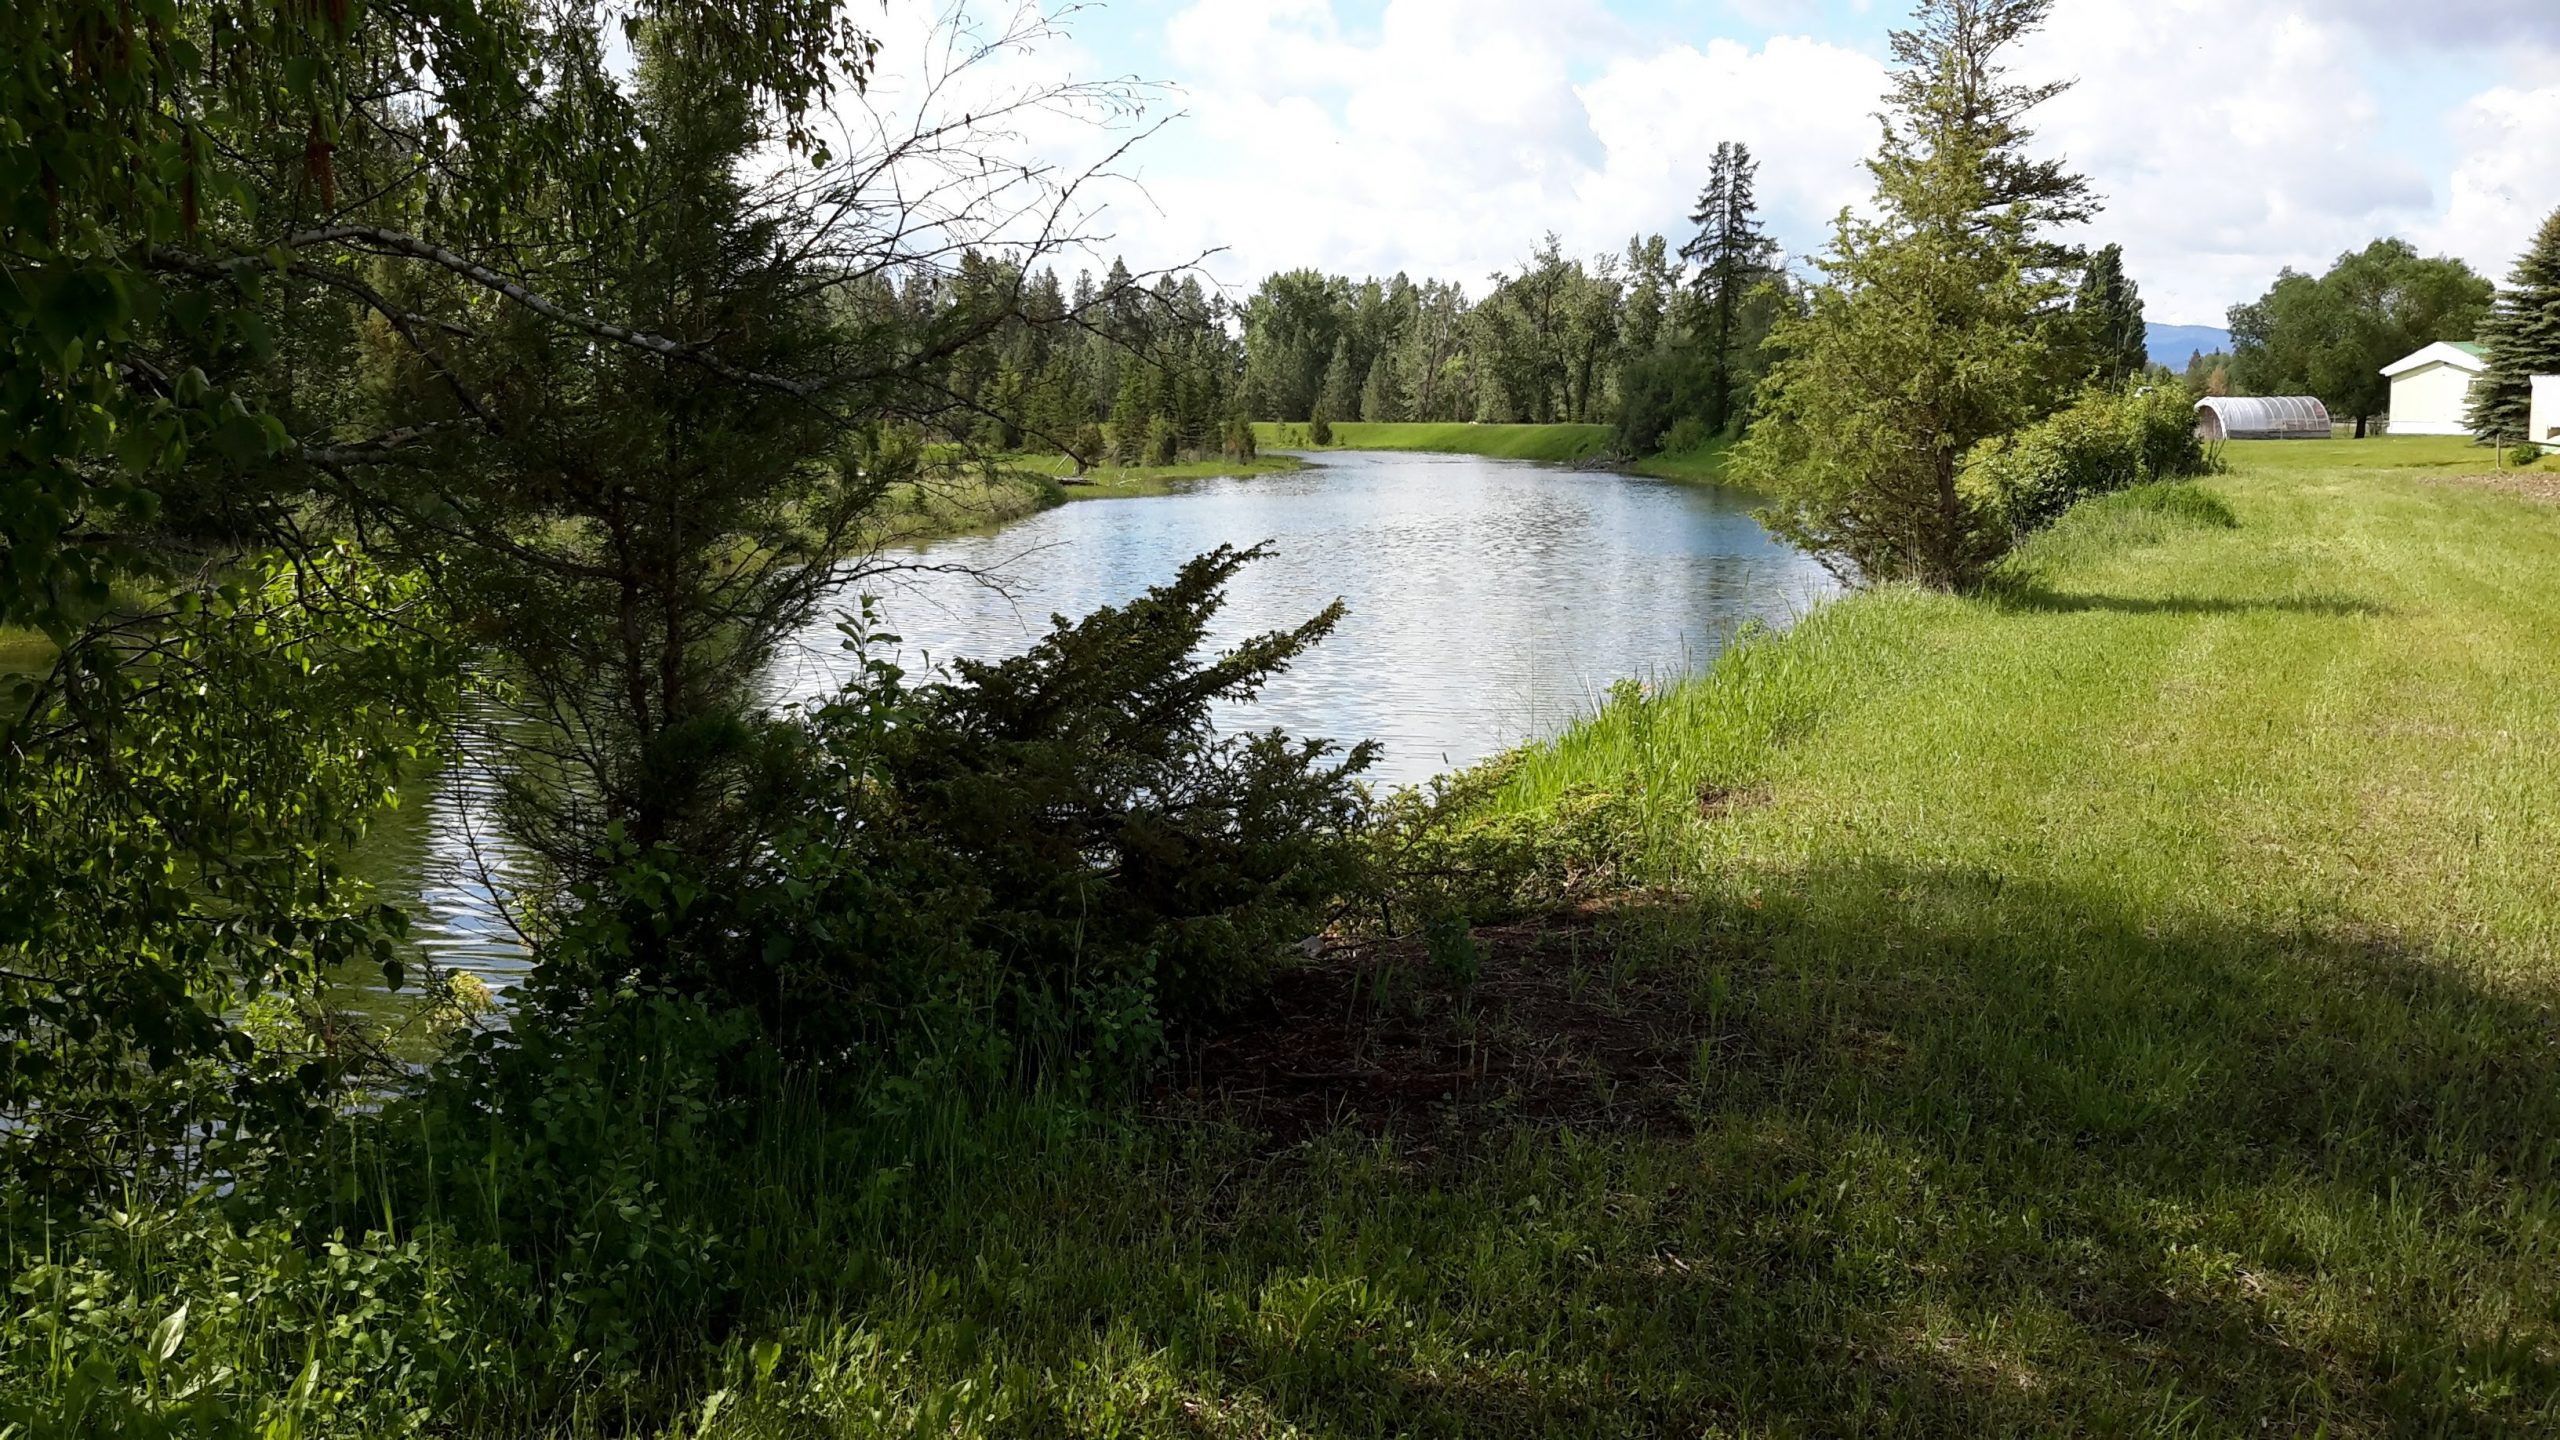 Goodrich Bayou Conservation Easement Protects Important Wildlife Values And Farm Soils Along The Flathead River Corridor